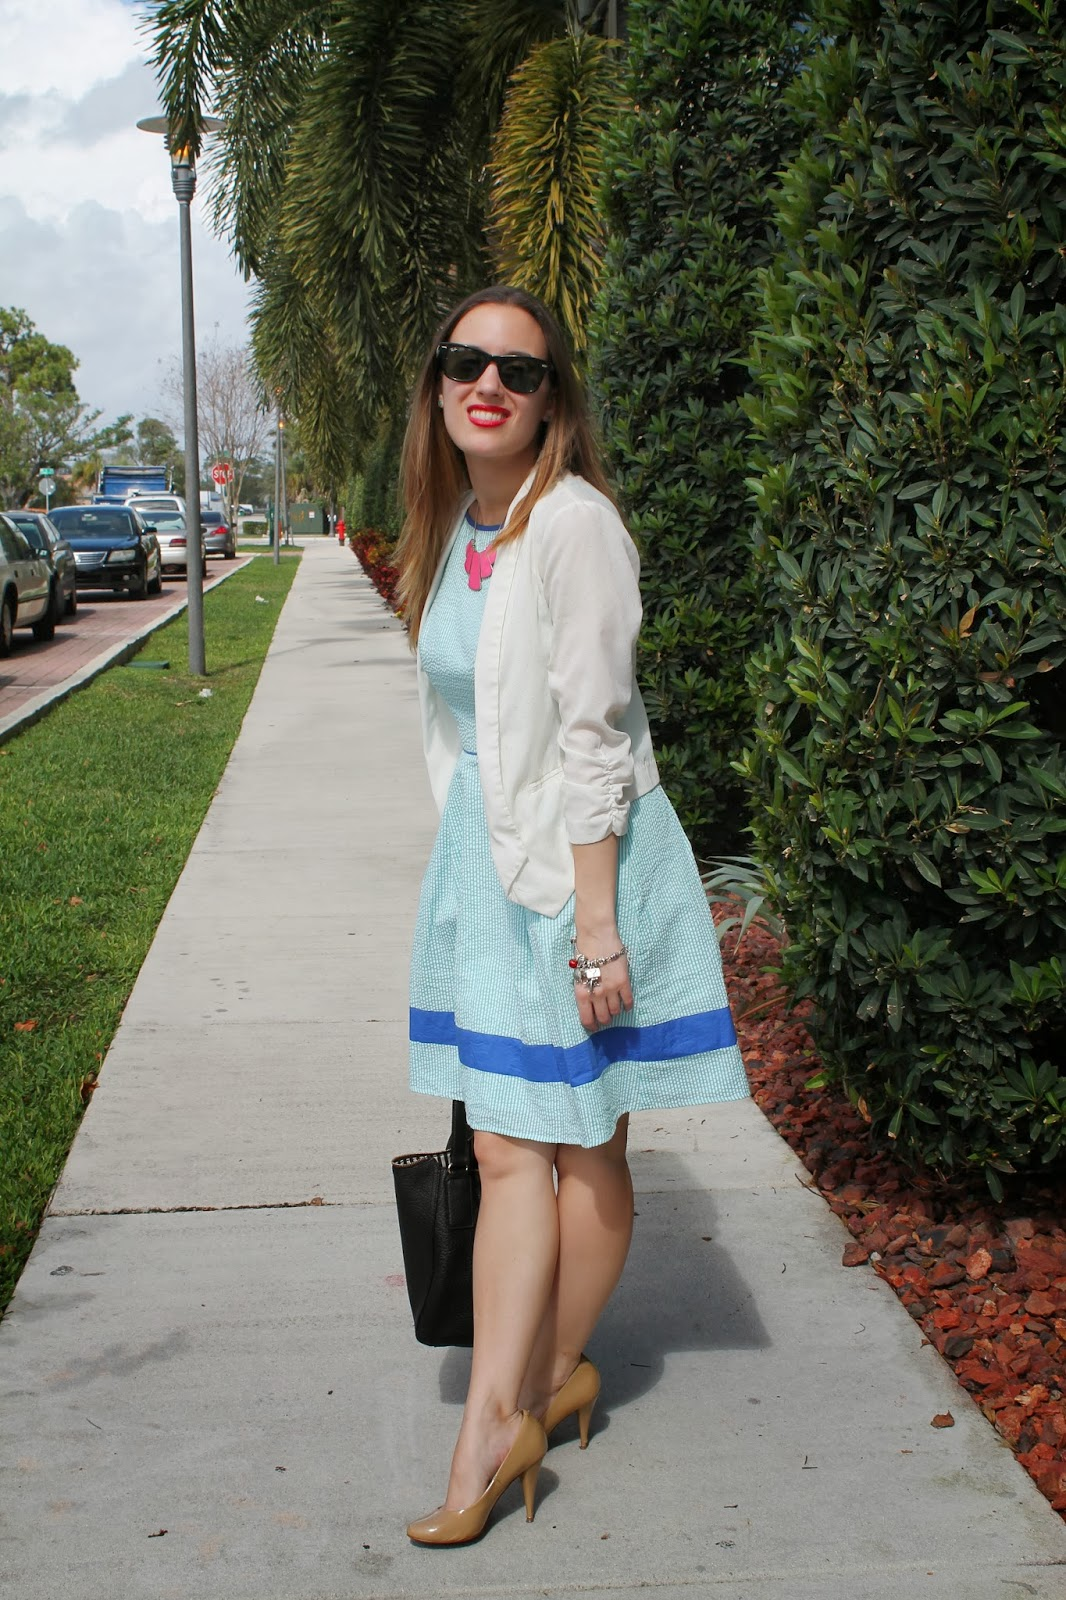 preppy, southern, miami, fashion blog, classic, seersucker, Jessica Simpson, Ray-Ban, Nordstrom, what i wore, look book